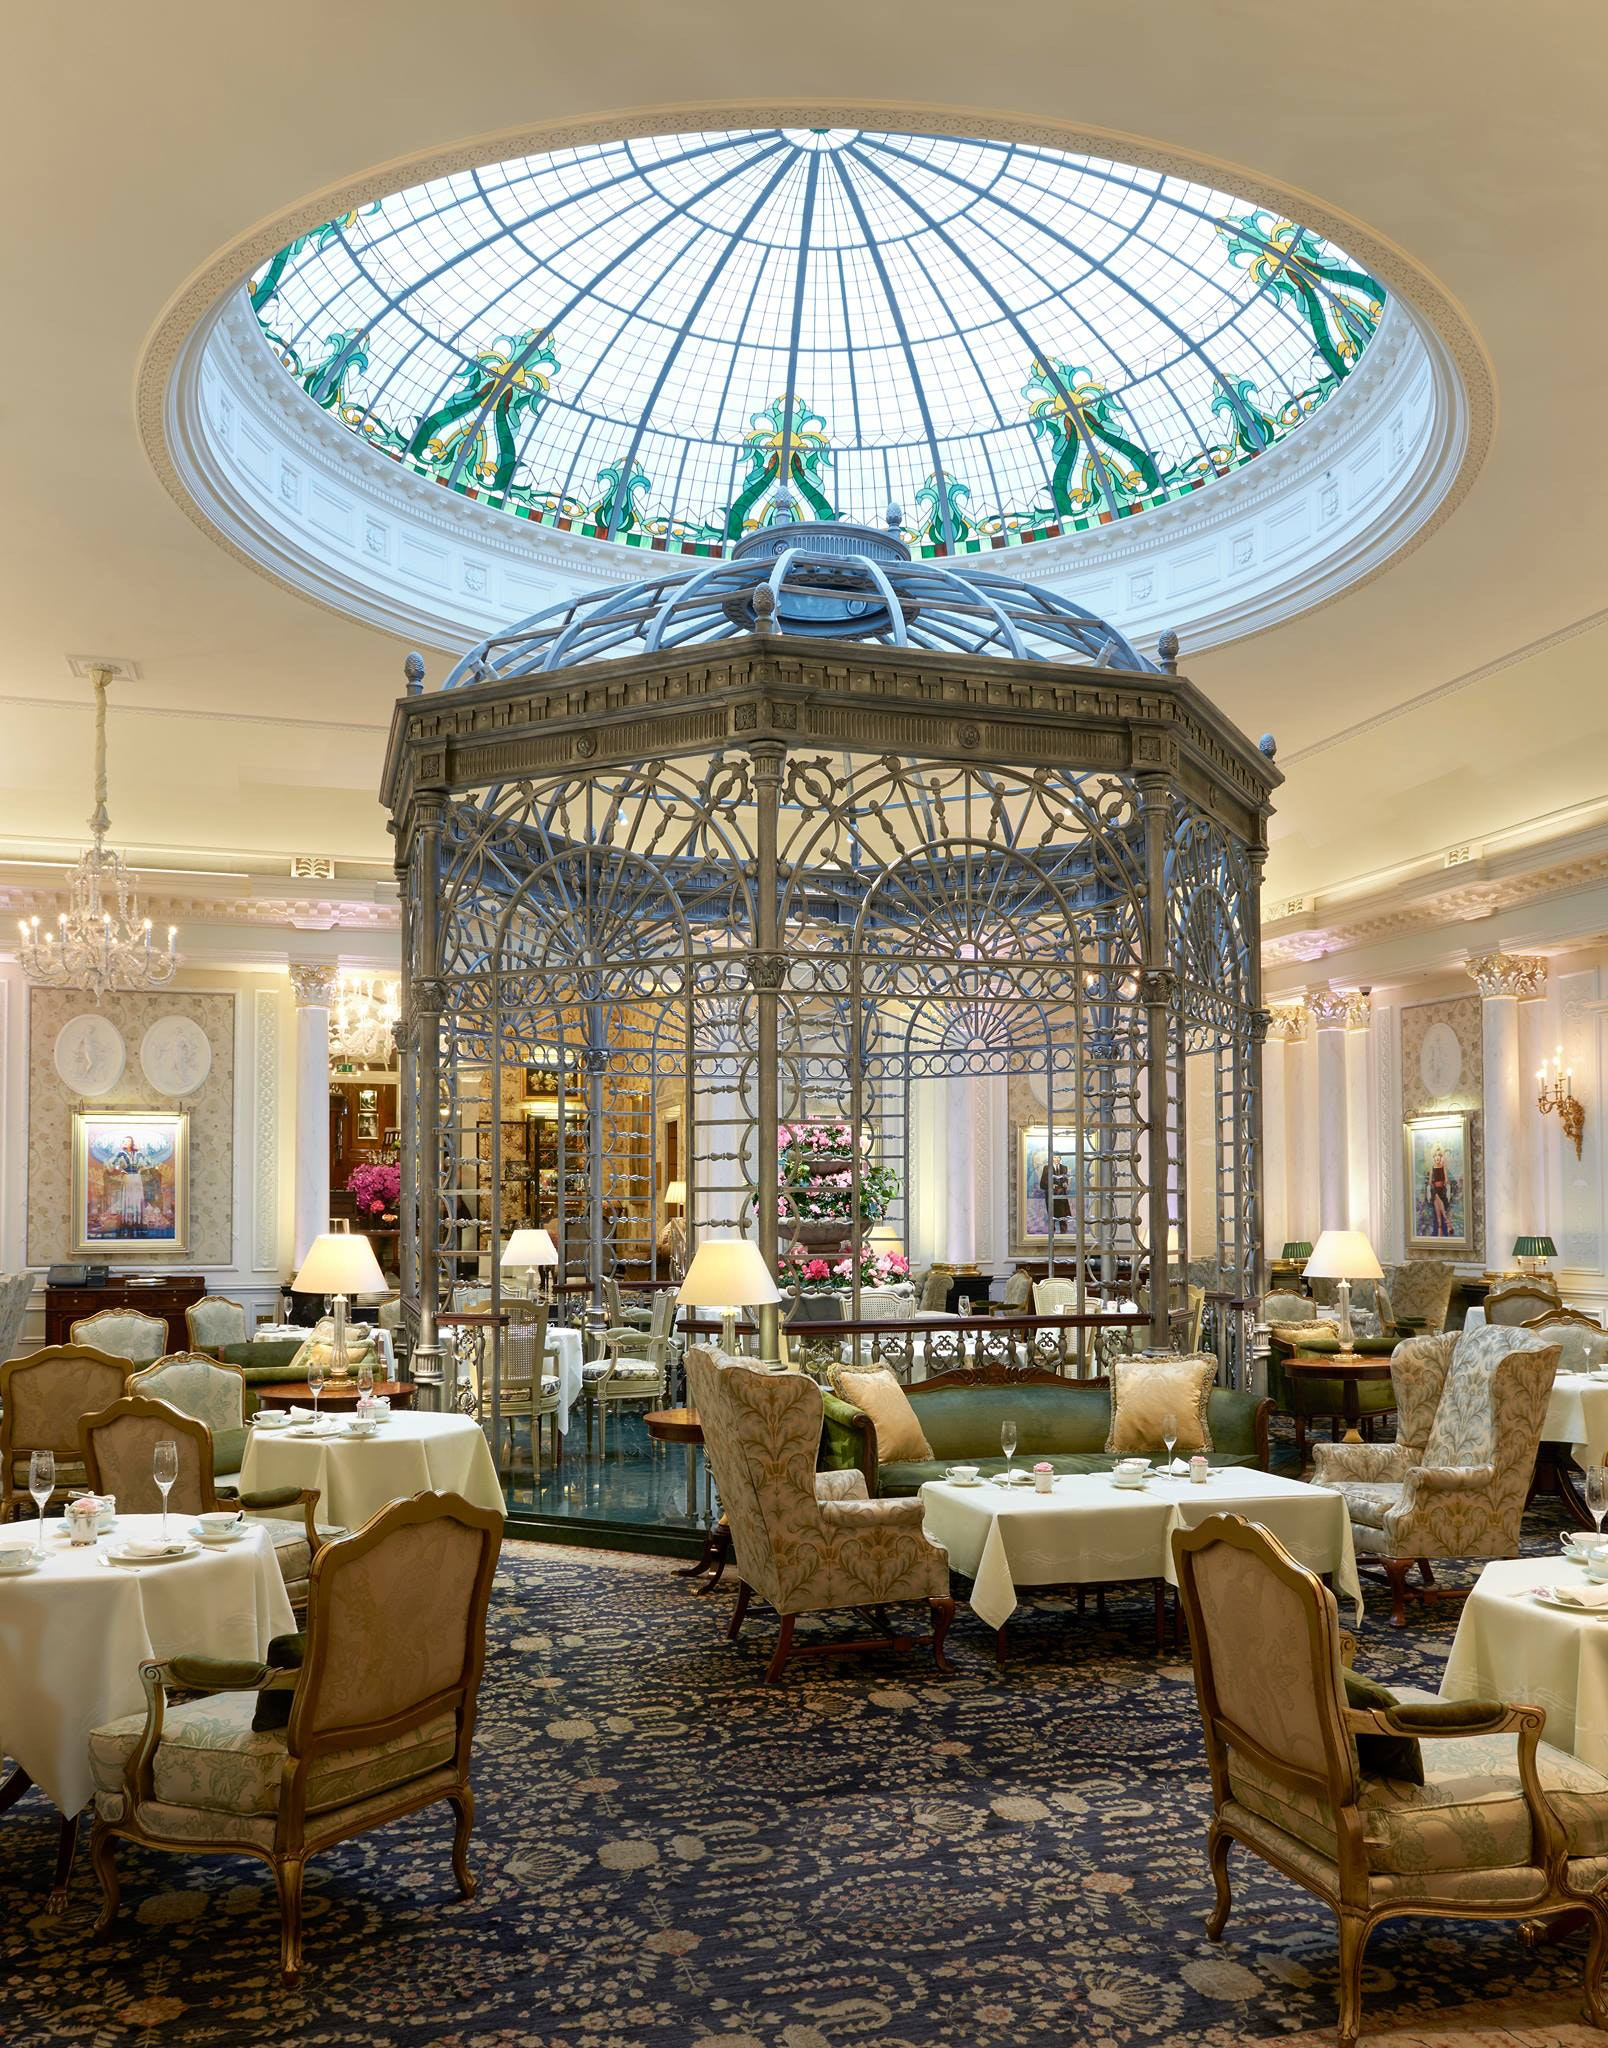 Afternoon tea in the Thames Foyer at The Savoy